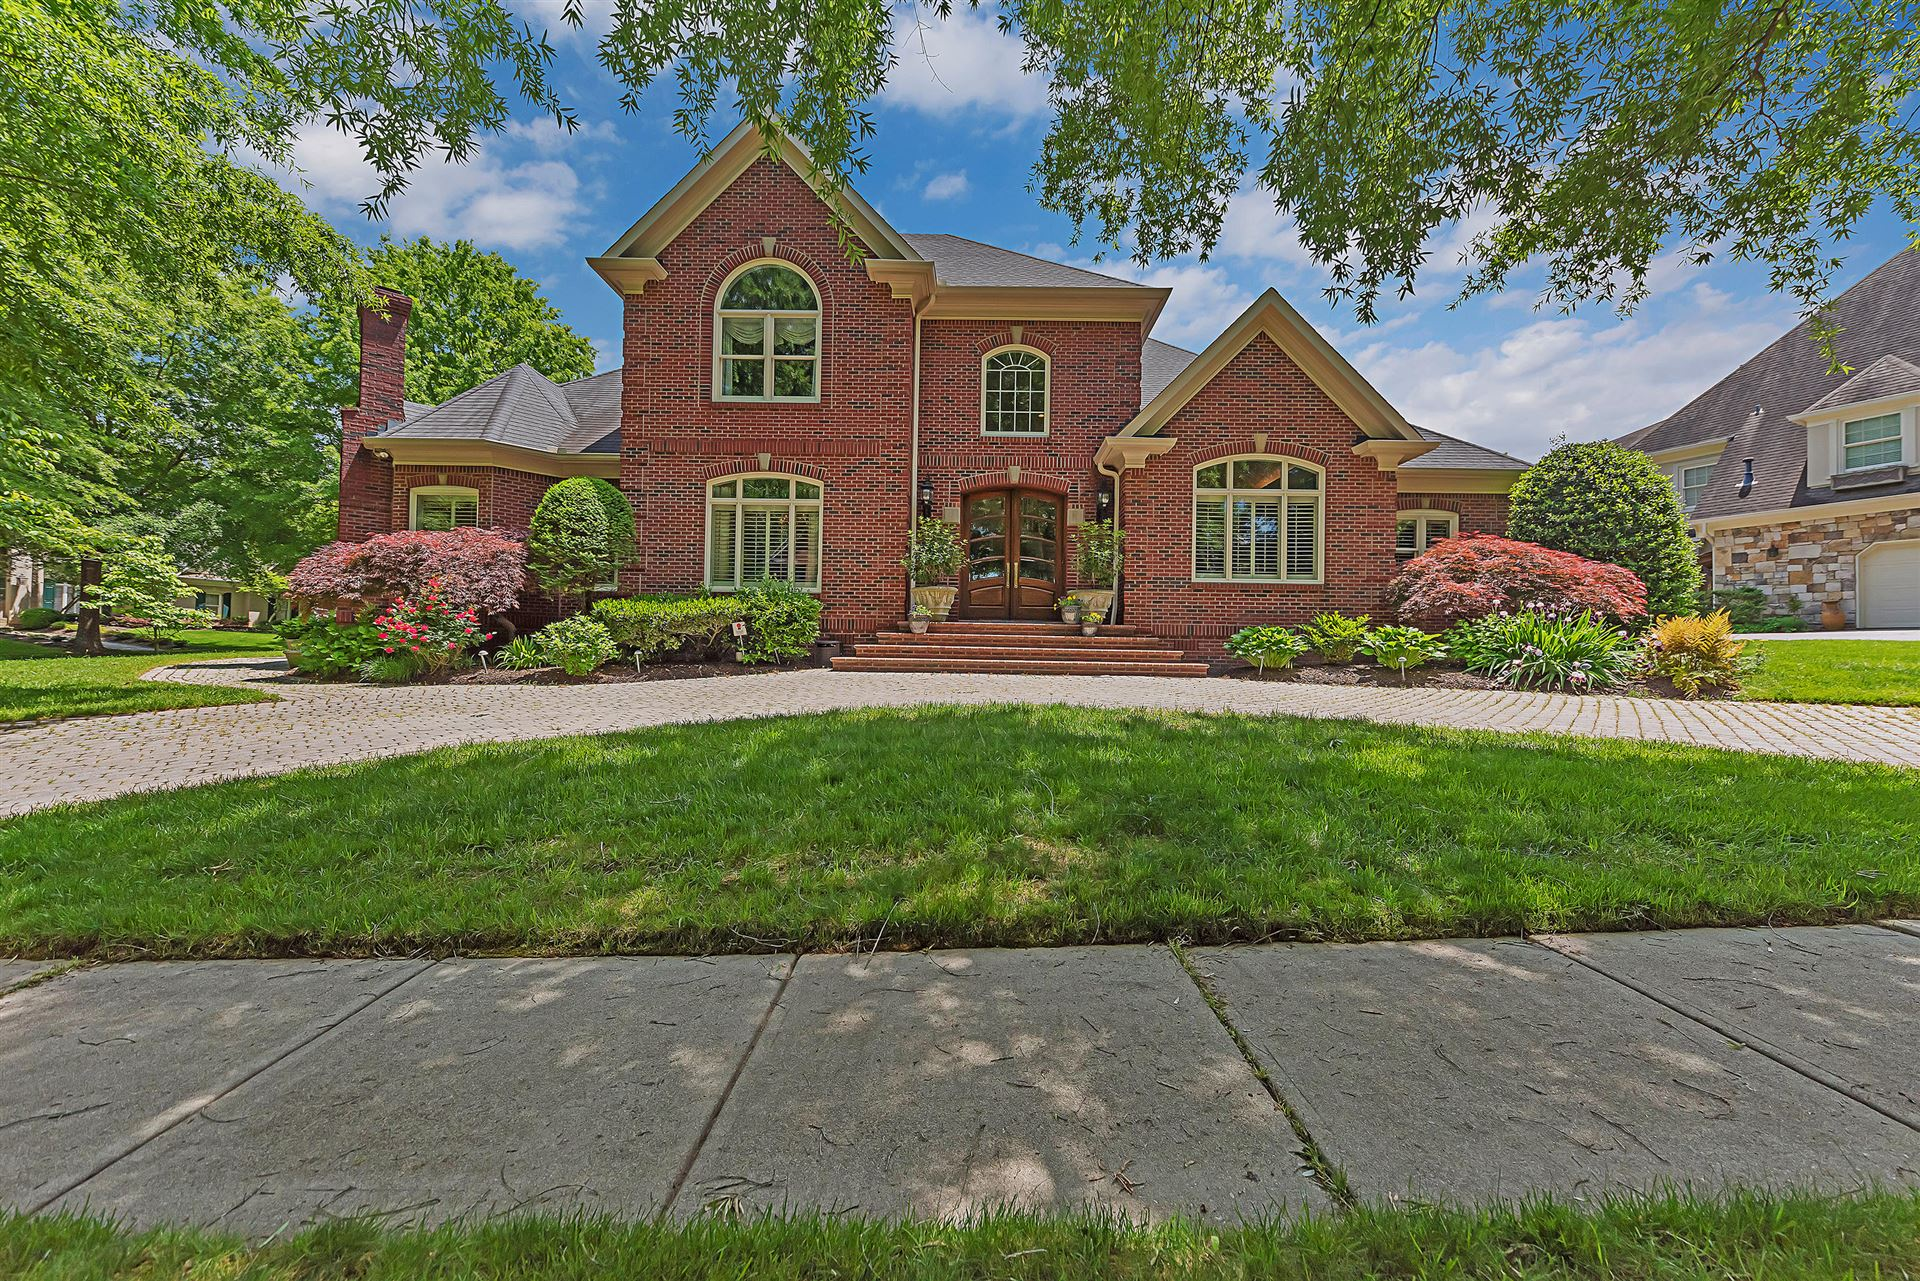 Photo of 12000 Avallon Place, Knoxville, TN 37934 (MLS # 1152980)